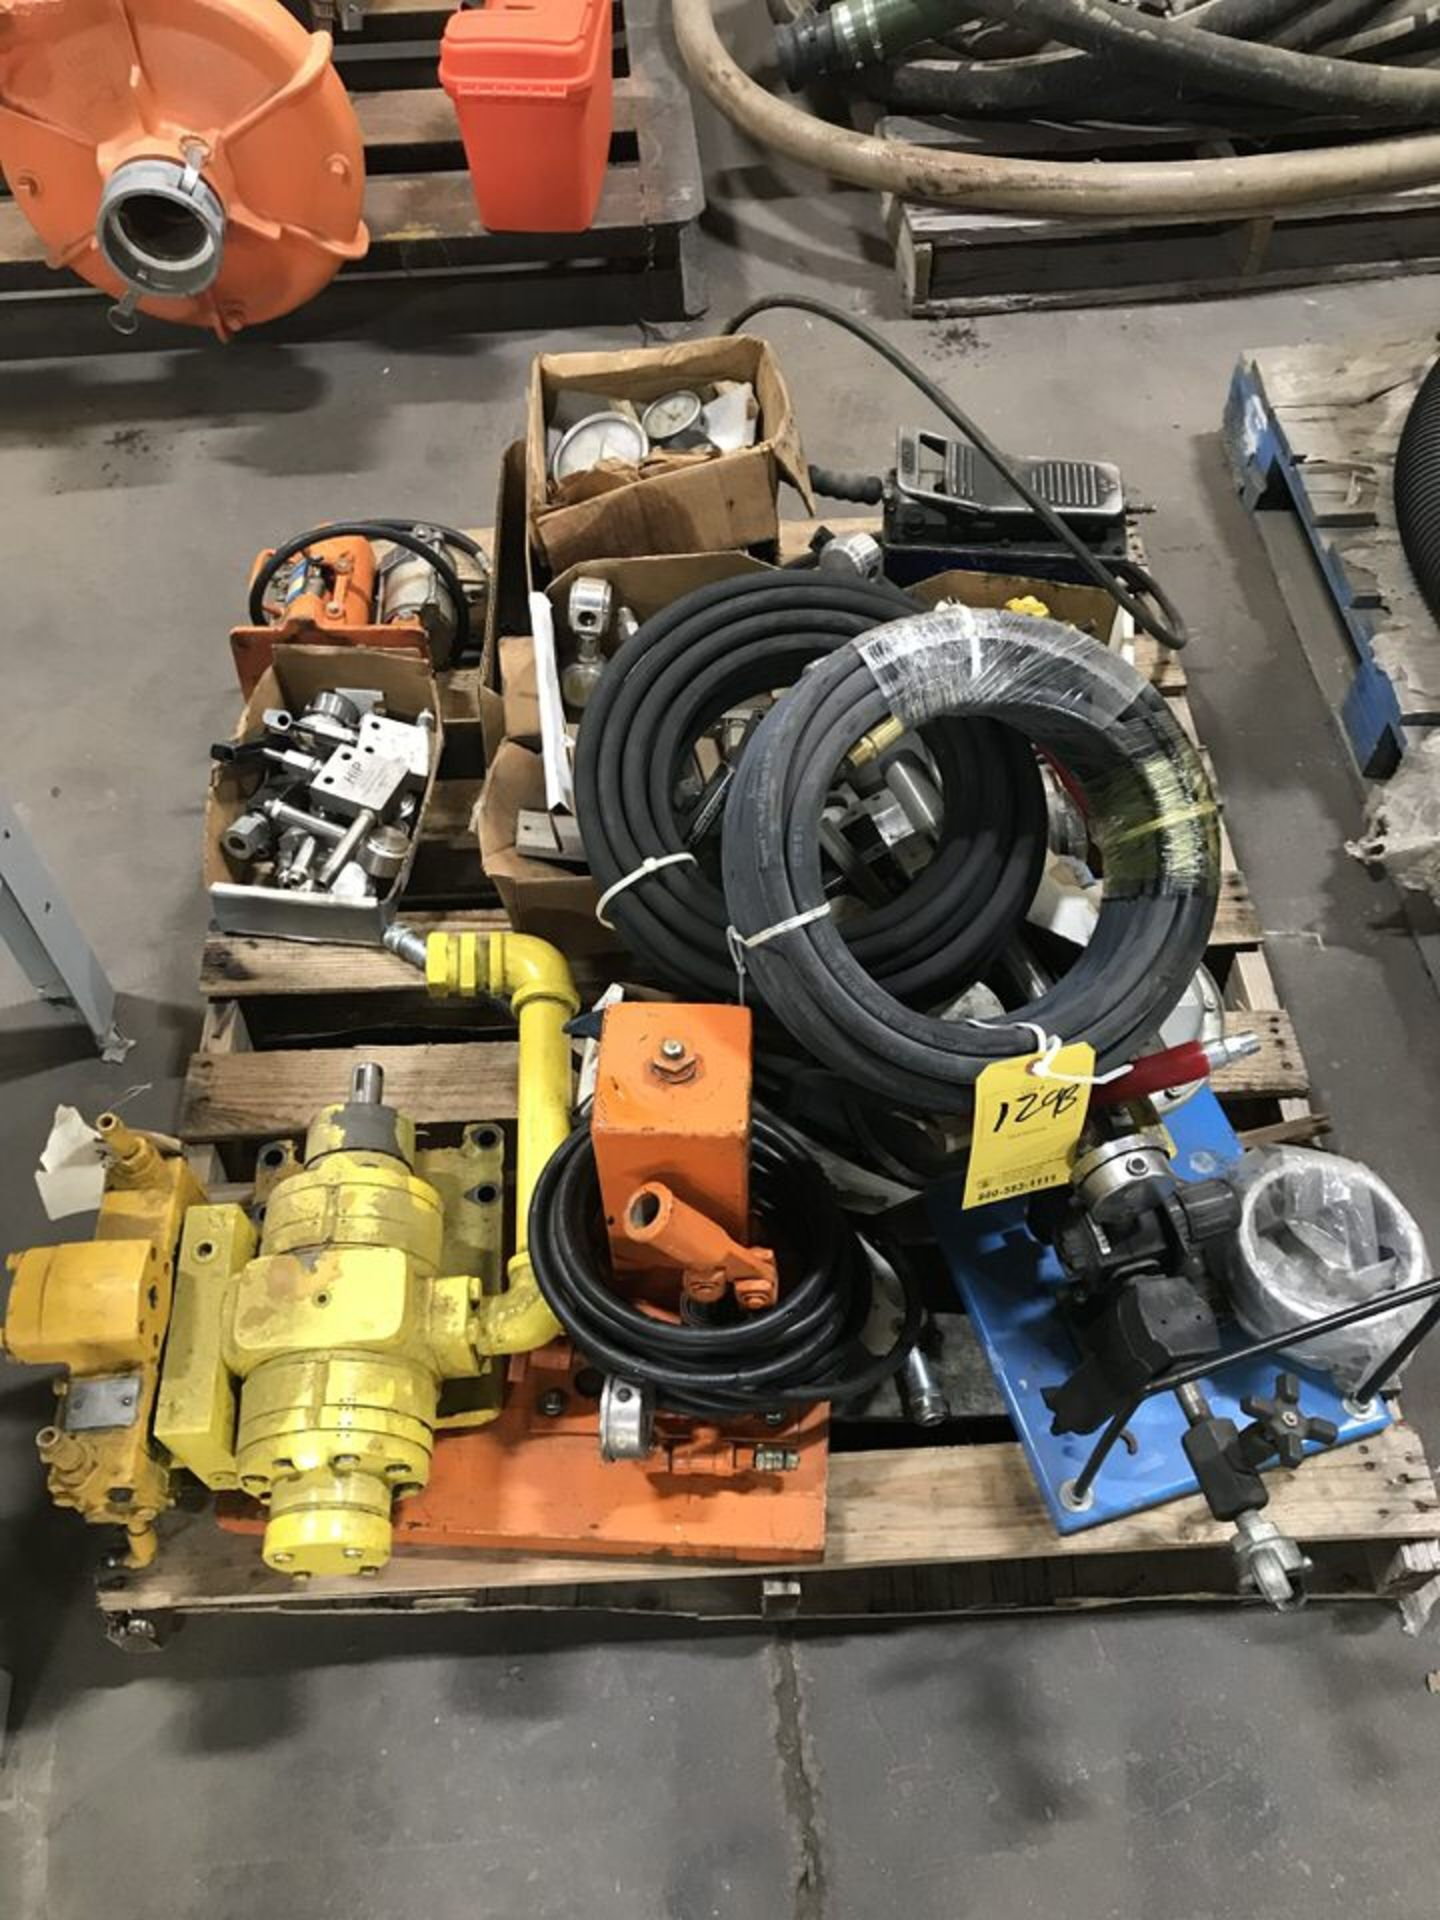 Lot 129B - Pump Equipment (LOCATION 1: 3421 N SYLVANIA, FT WORTH, TX, 76111)